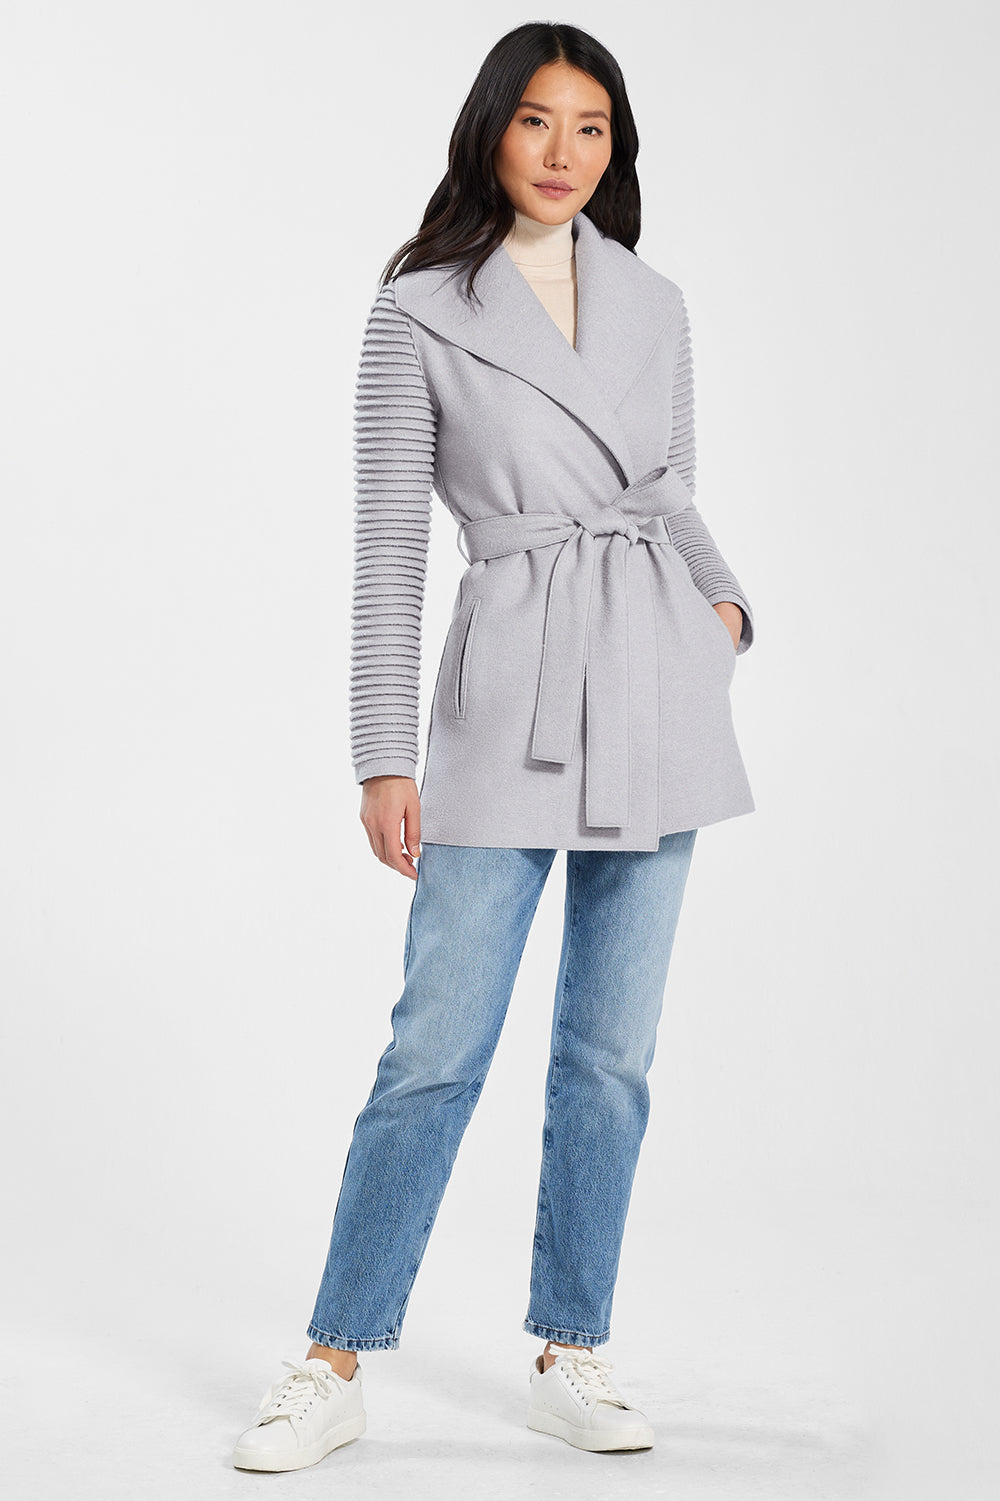 Sentaler Wrap Coat with Ribbed Sleeves featured in Superfine Alpaca and available in Opal Grey. Seen from front.